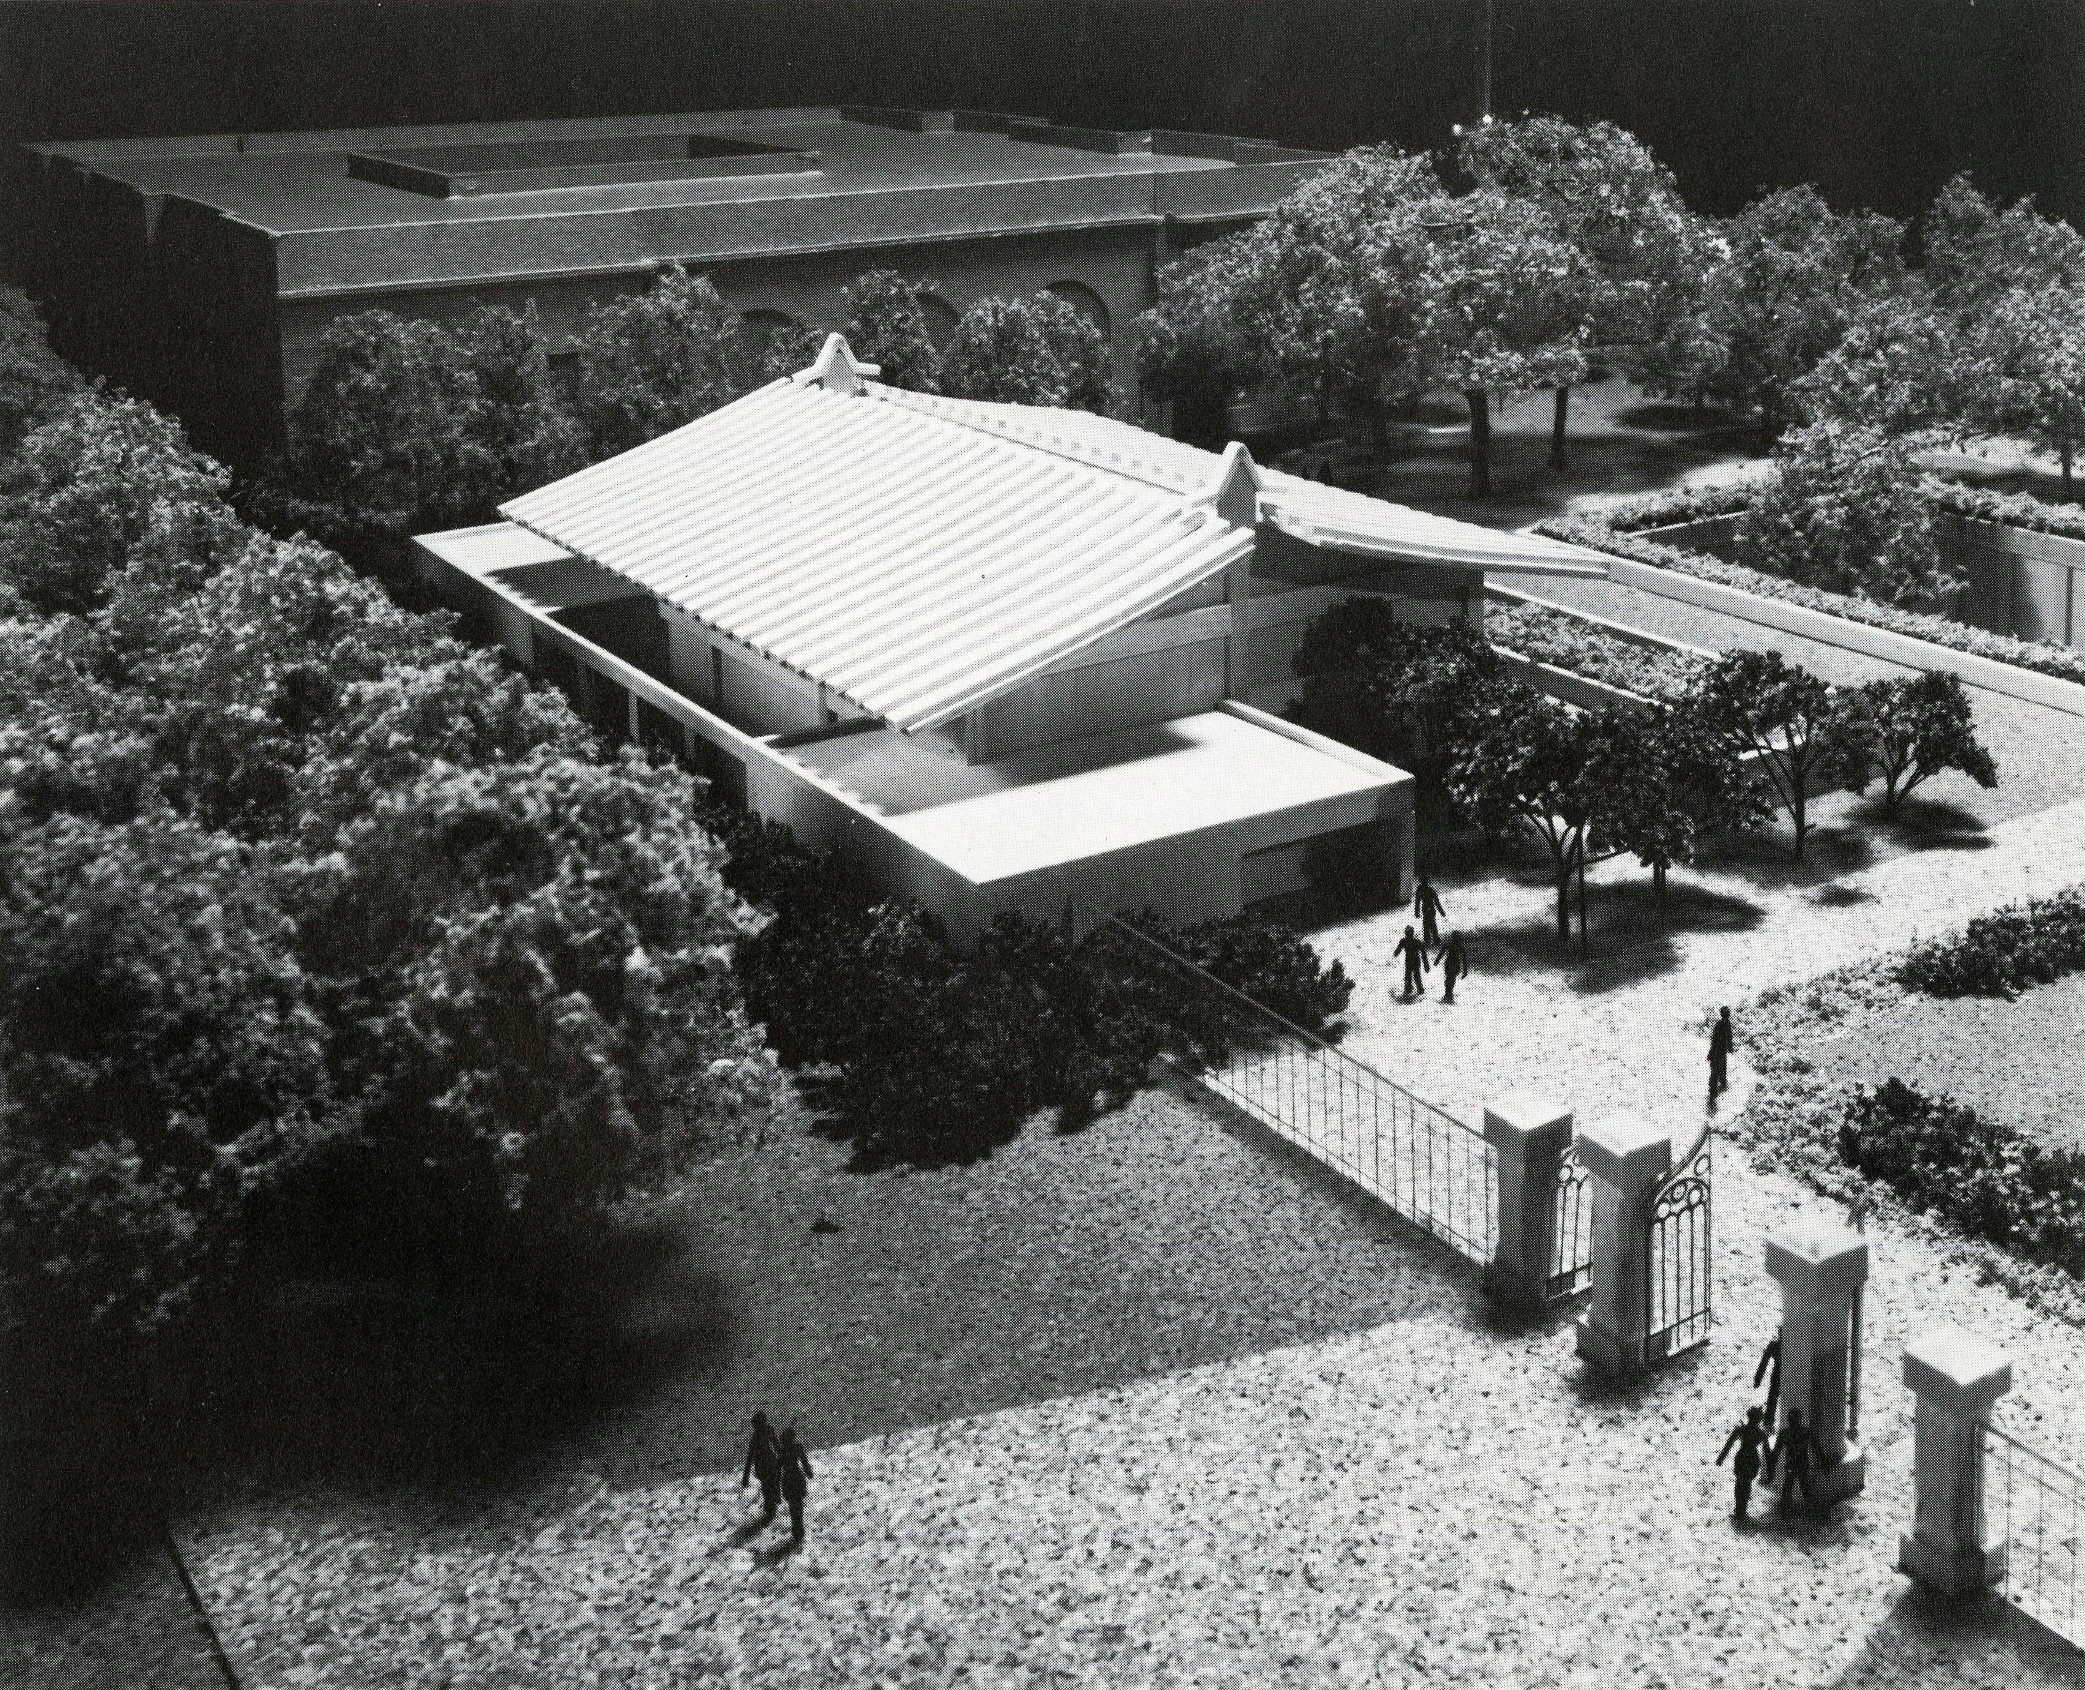 Model of Arthur M. Sackler Gallery of Art, by Dane A. Penland.